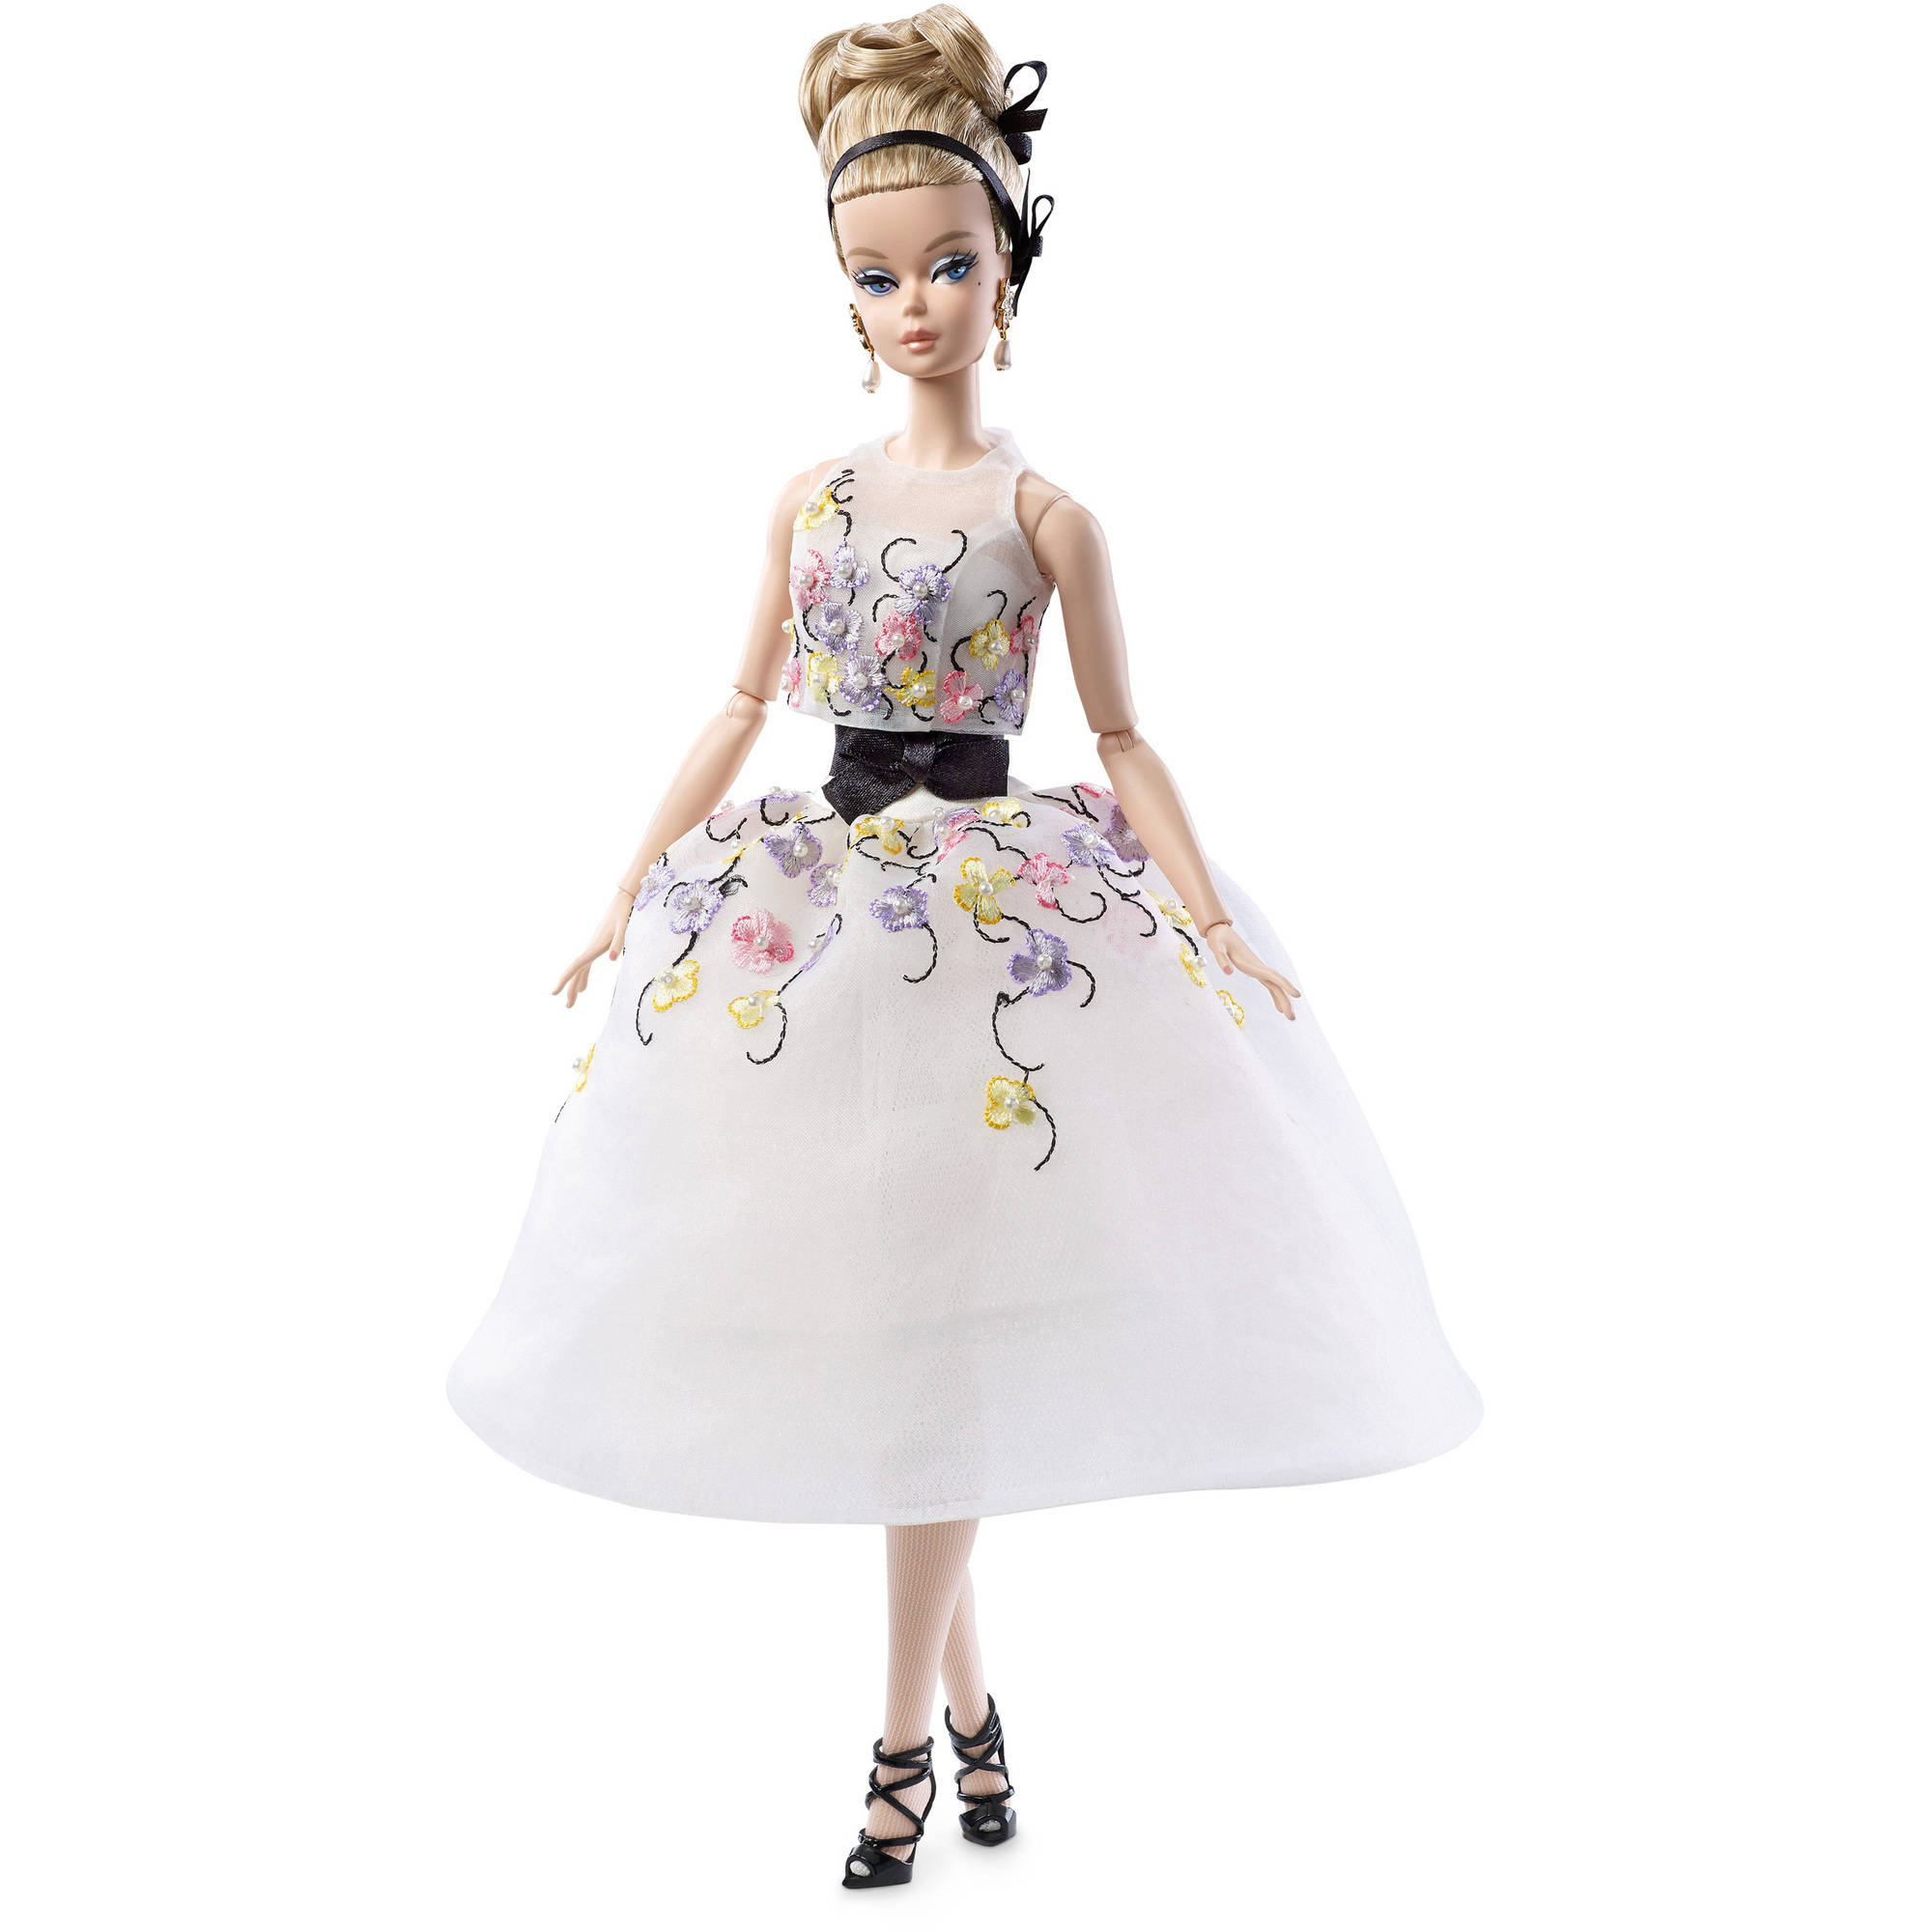 Barbie Fashion Model Collection Glam Dress Doll by Mattel